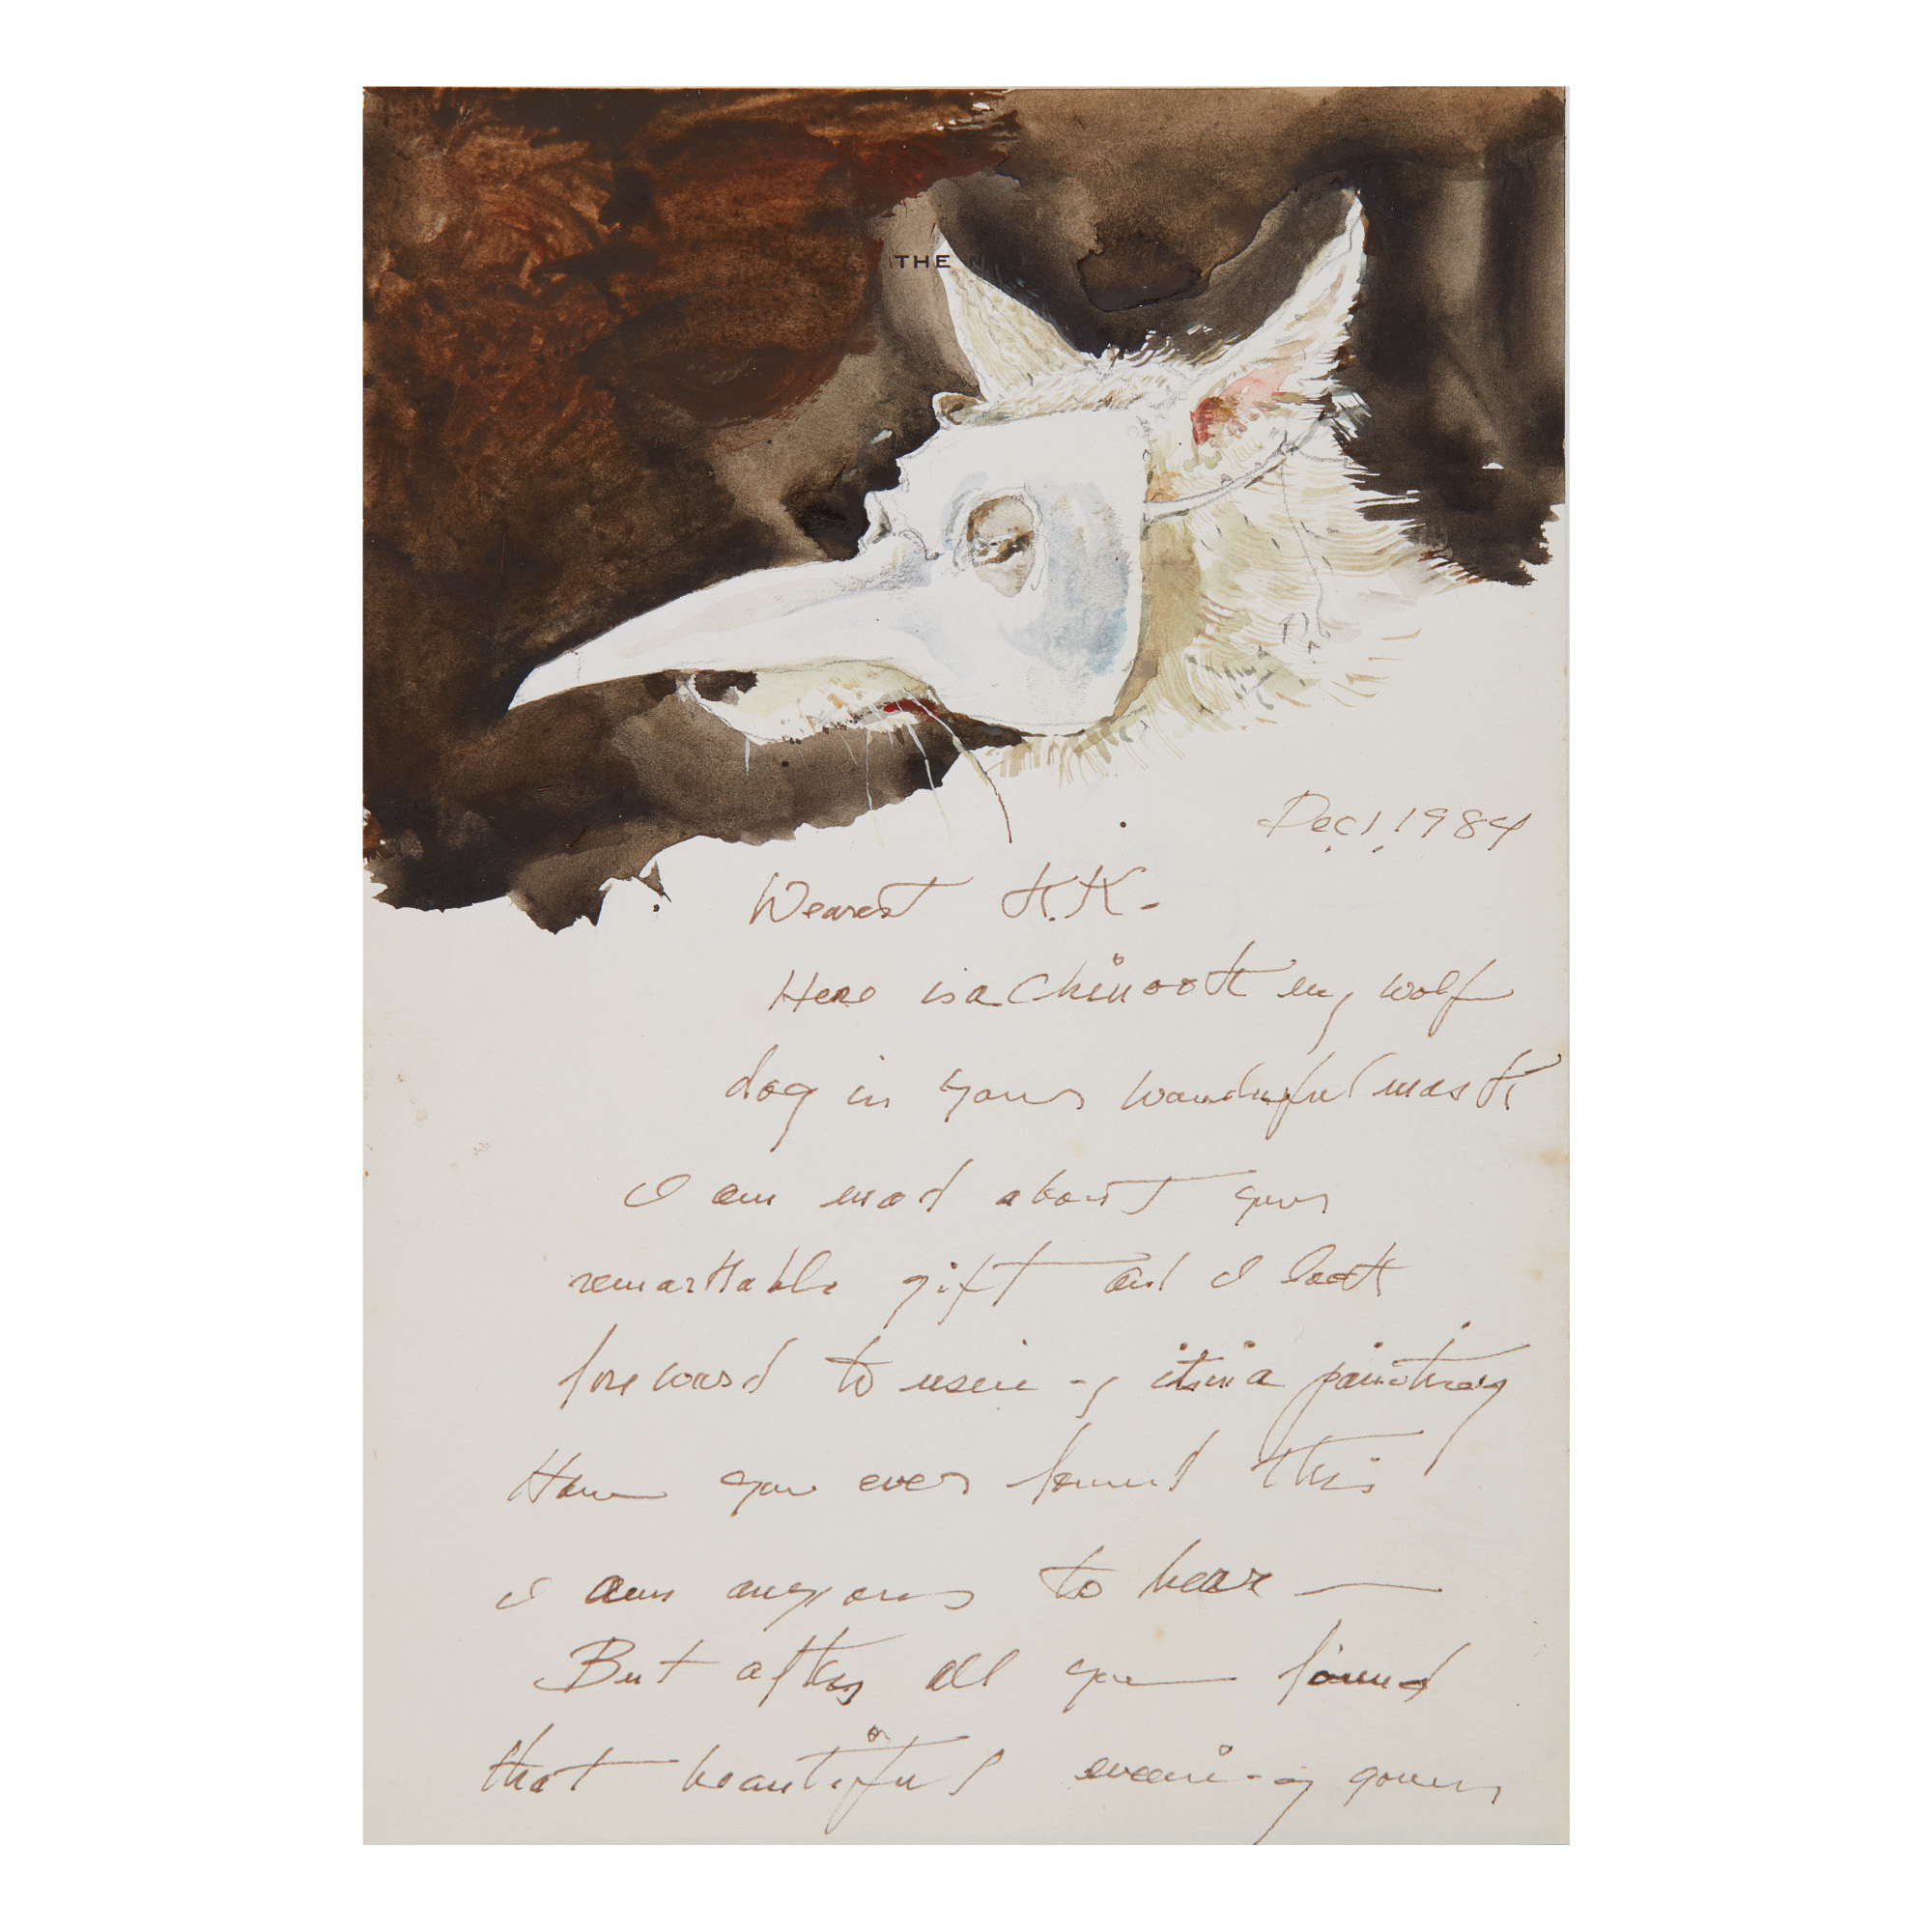 ANDREW WYETH | LETTER WITH NOME IN VENETIAN MASK | American